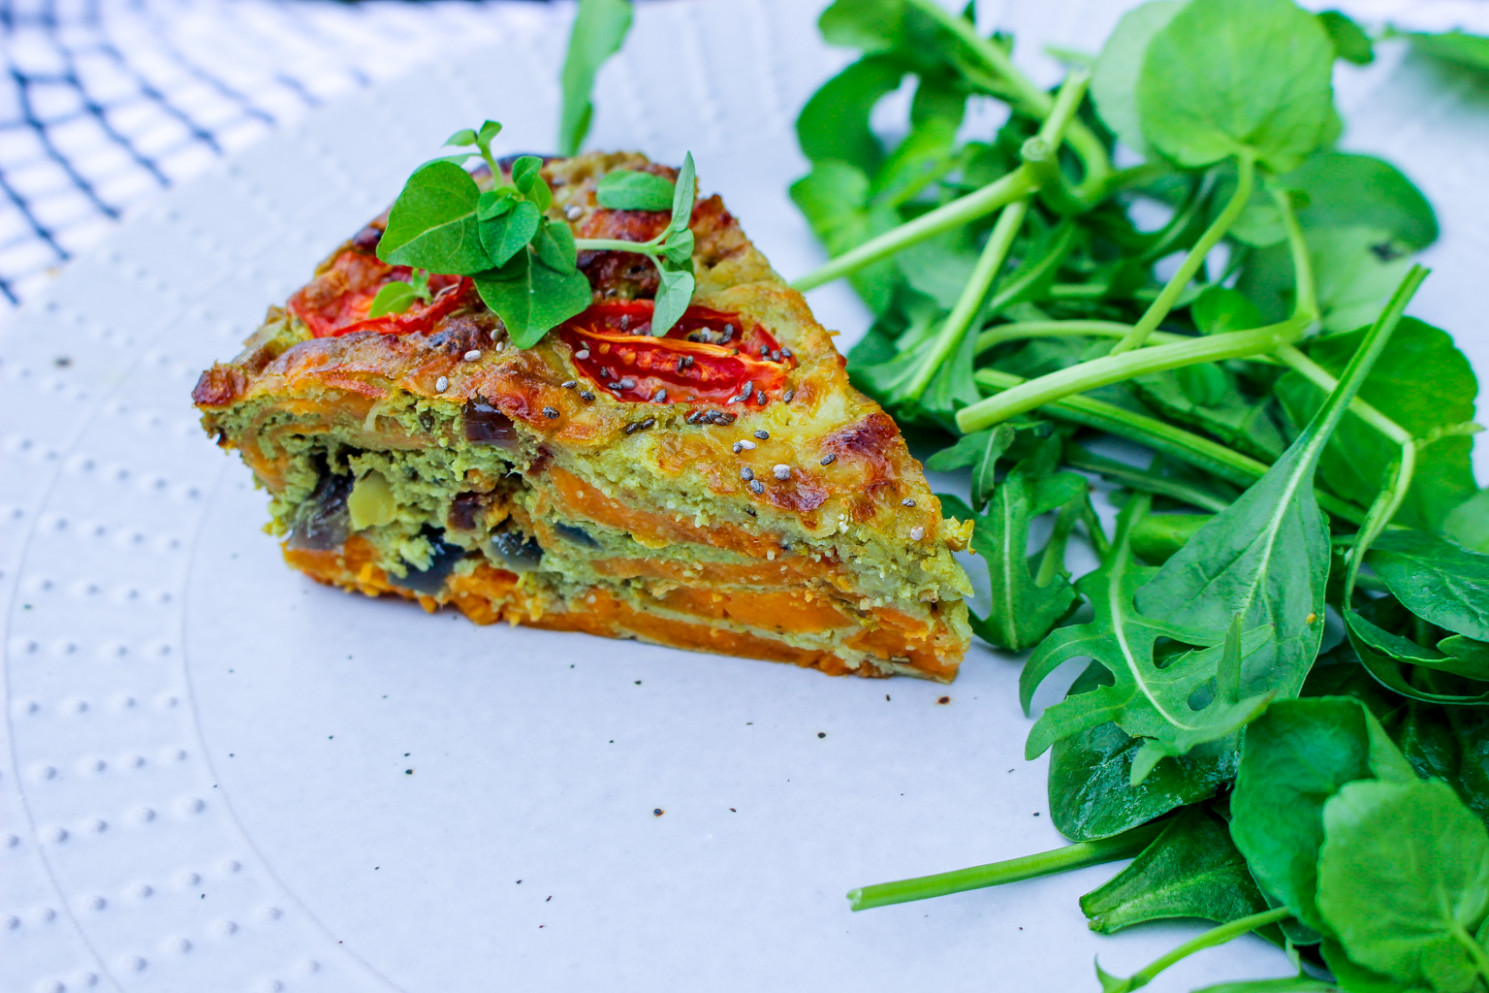 VEGGIE KALE AND BROCCOLI QUICHE RECIPE HEALTHY DIET MEAL IDEA - healthy recipes tasty